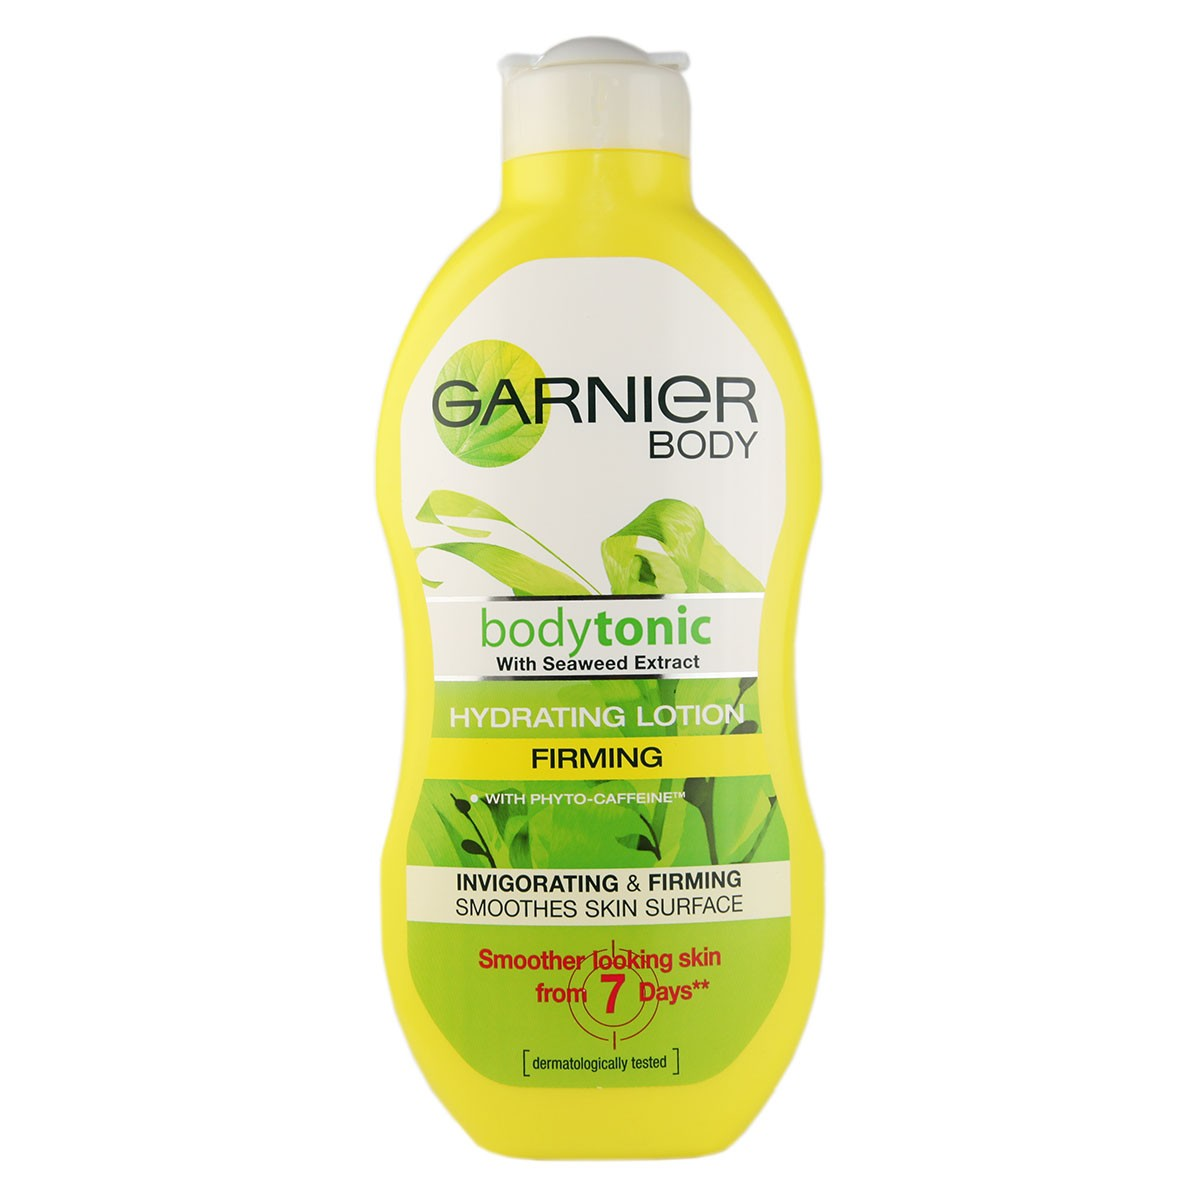 Garnier BodyTonic  Moisturising and Firming Lotion